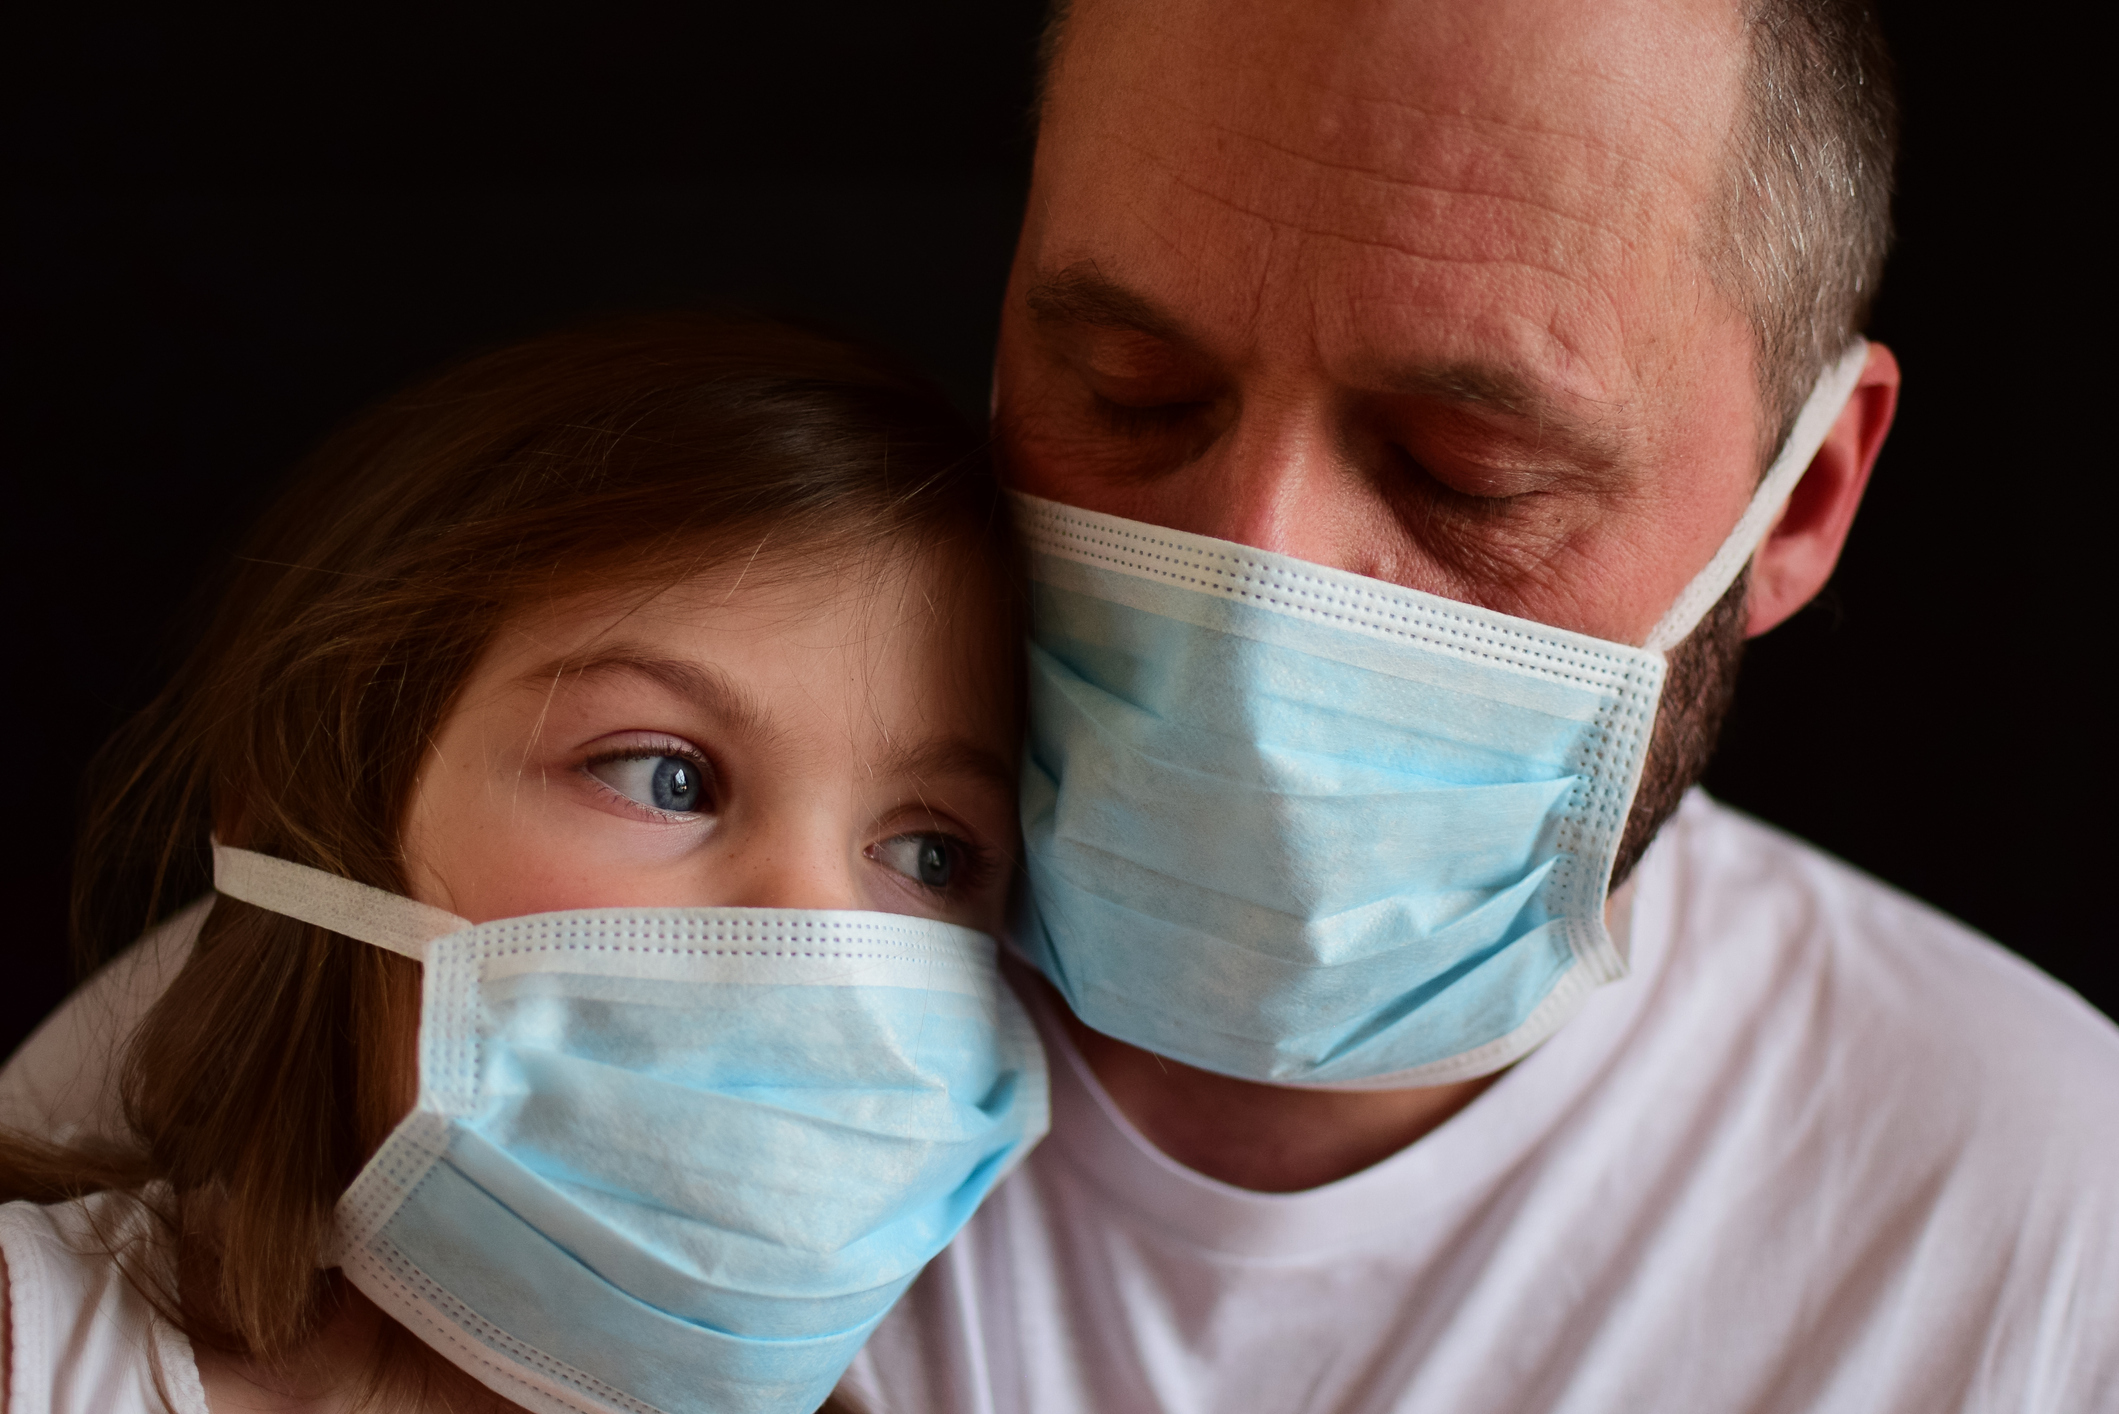 Wearing a Face Mask at Home Could Reduce COVID-19 Transmission Risk by 80%